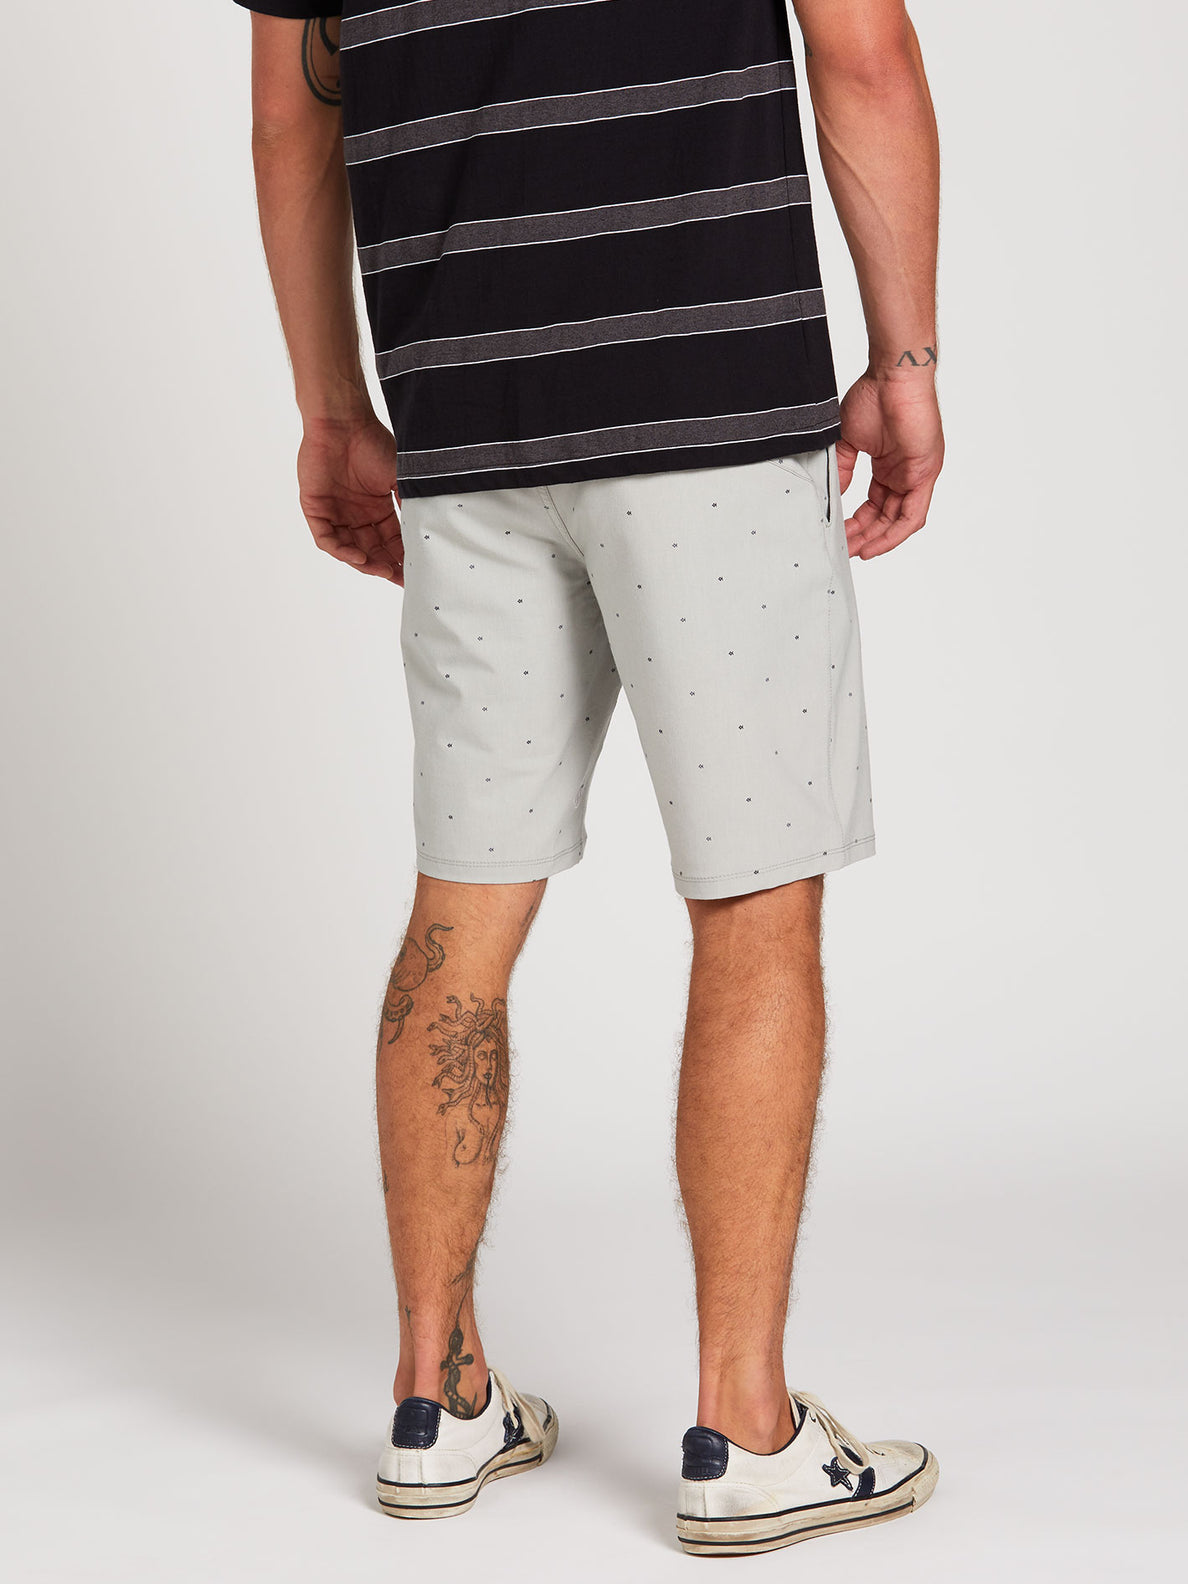 Frickin Surf N' Turf Mix Hybrid Shorts - Tower Grey (A3212003_TWR) [2]